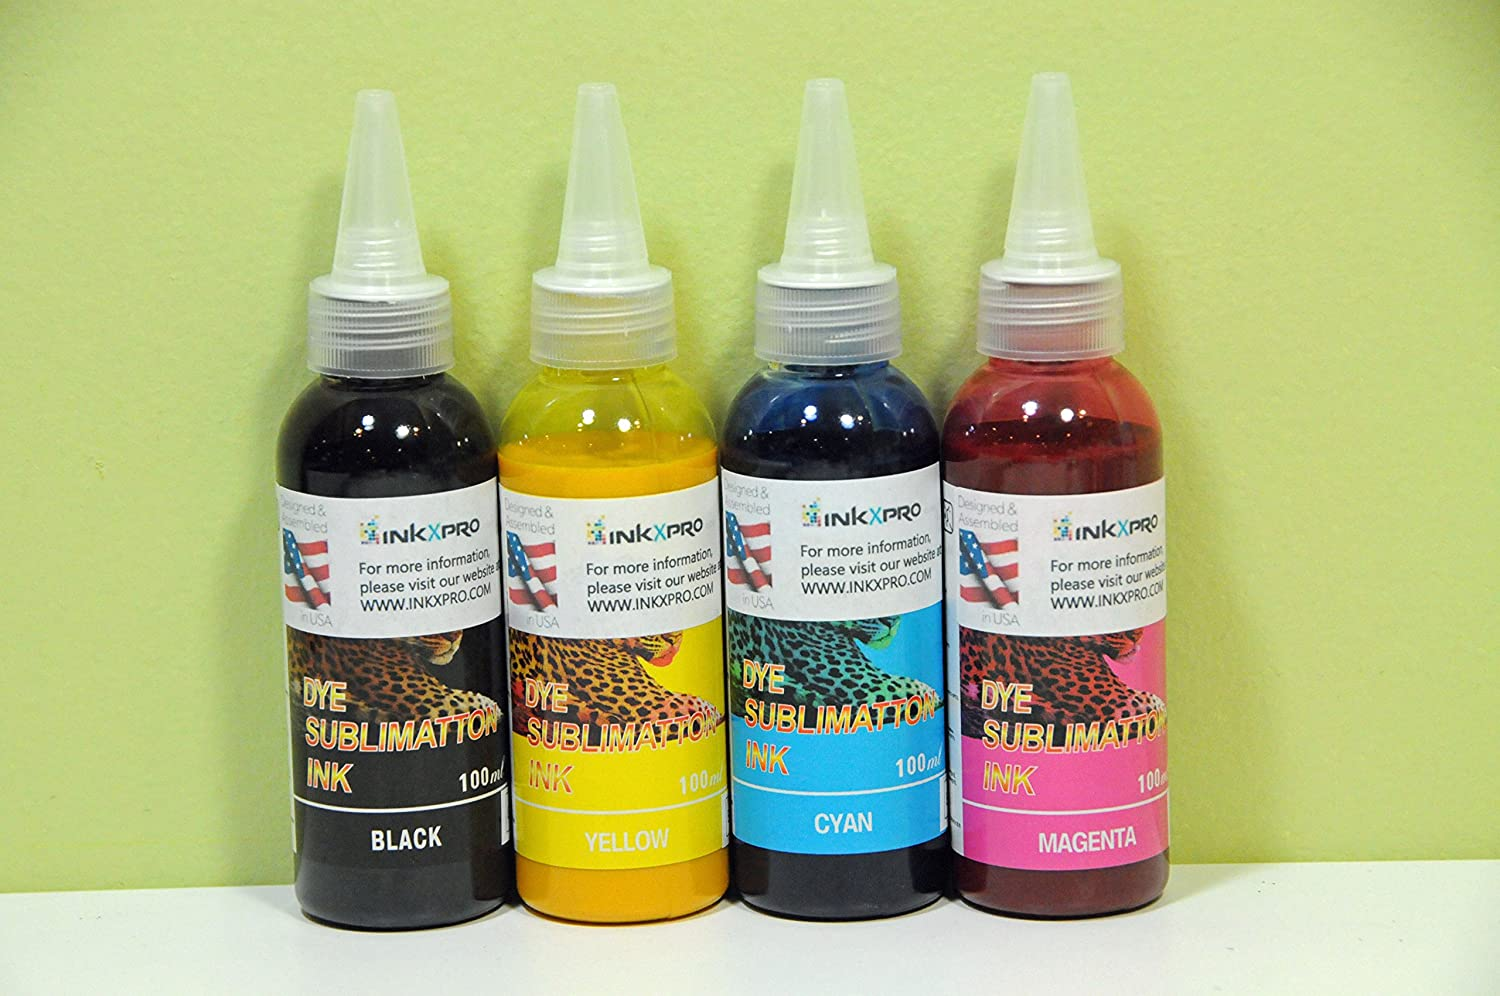 INKXPRO 4 X 100ml Professional True Color Sublimation Ink Refills for C68 C88 C88+ Workforce 3620 3640 7010 7510 7520 7110 7610 7620 7710 7720 7210 (for Sublimation Printing, ICC Profile Available)